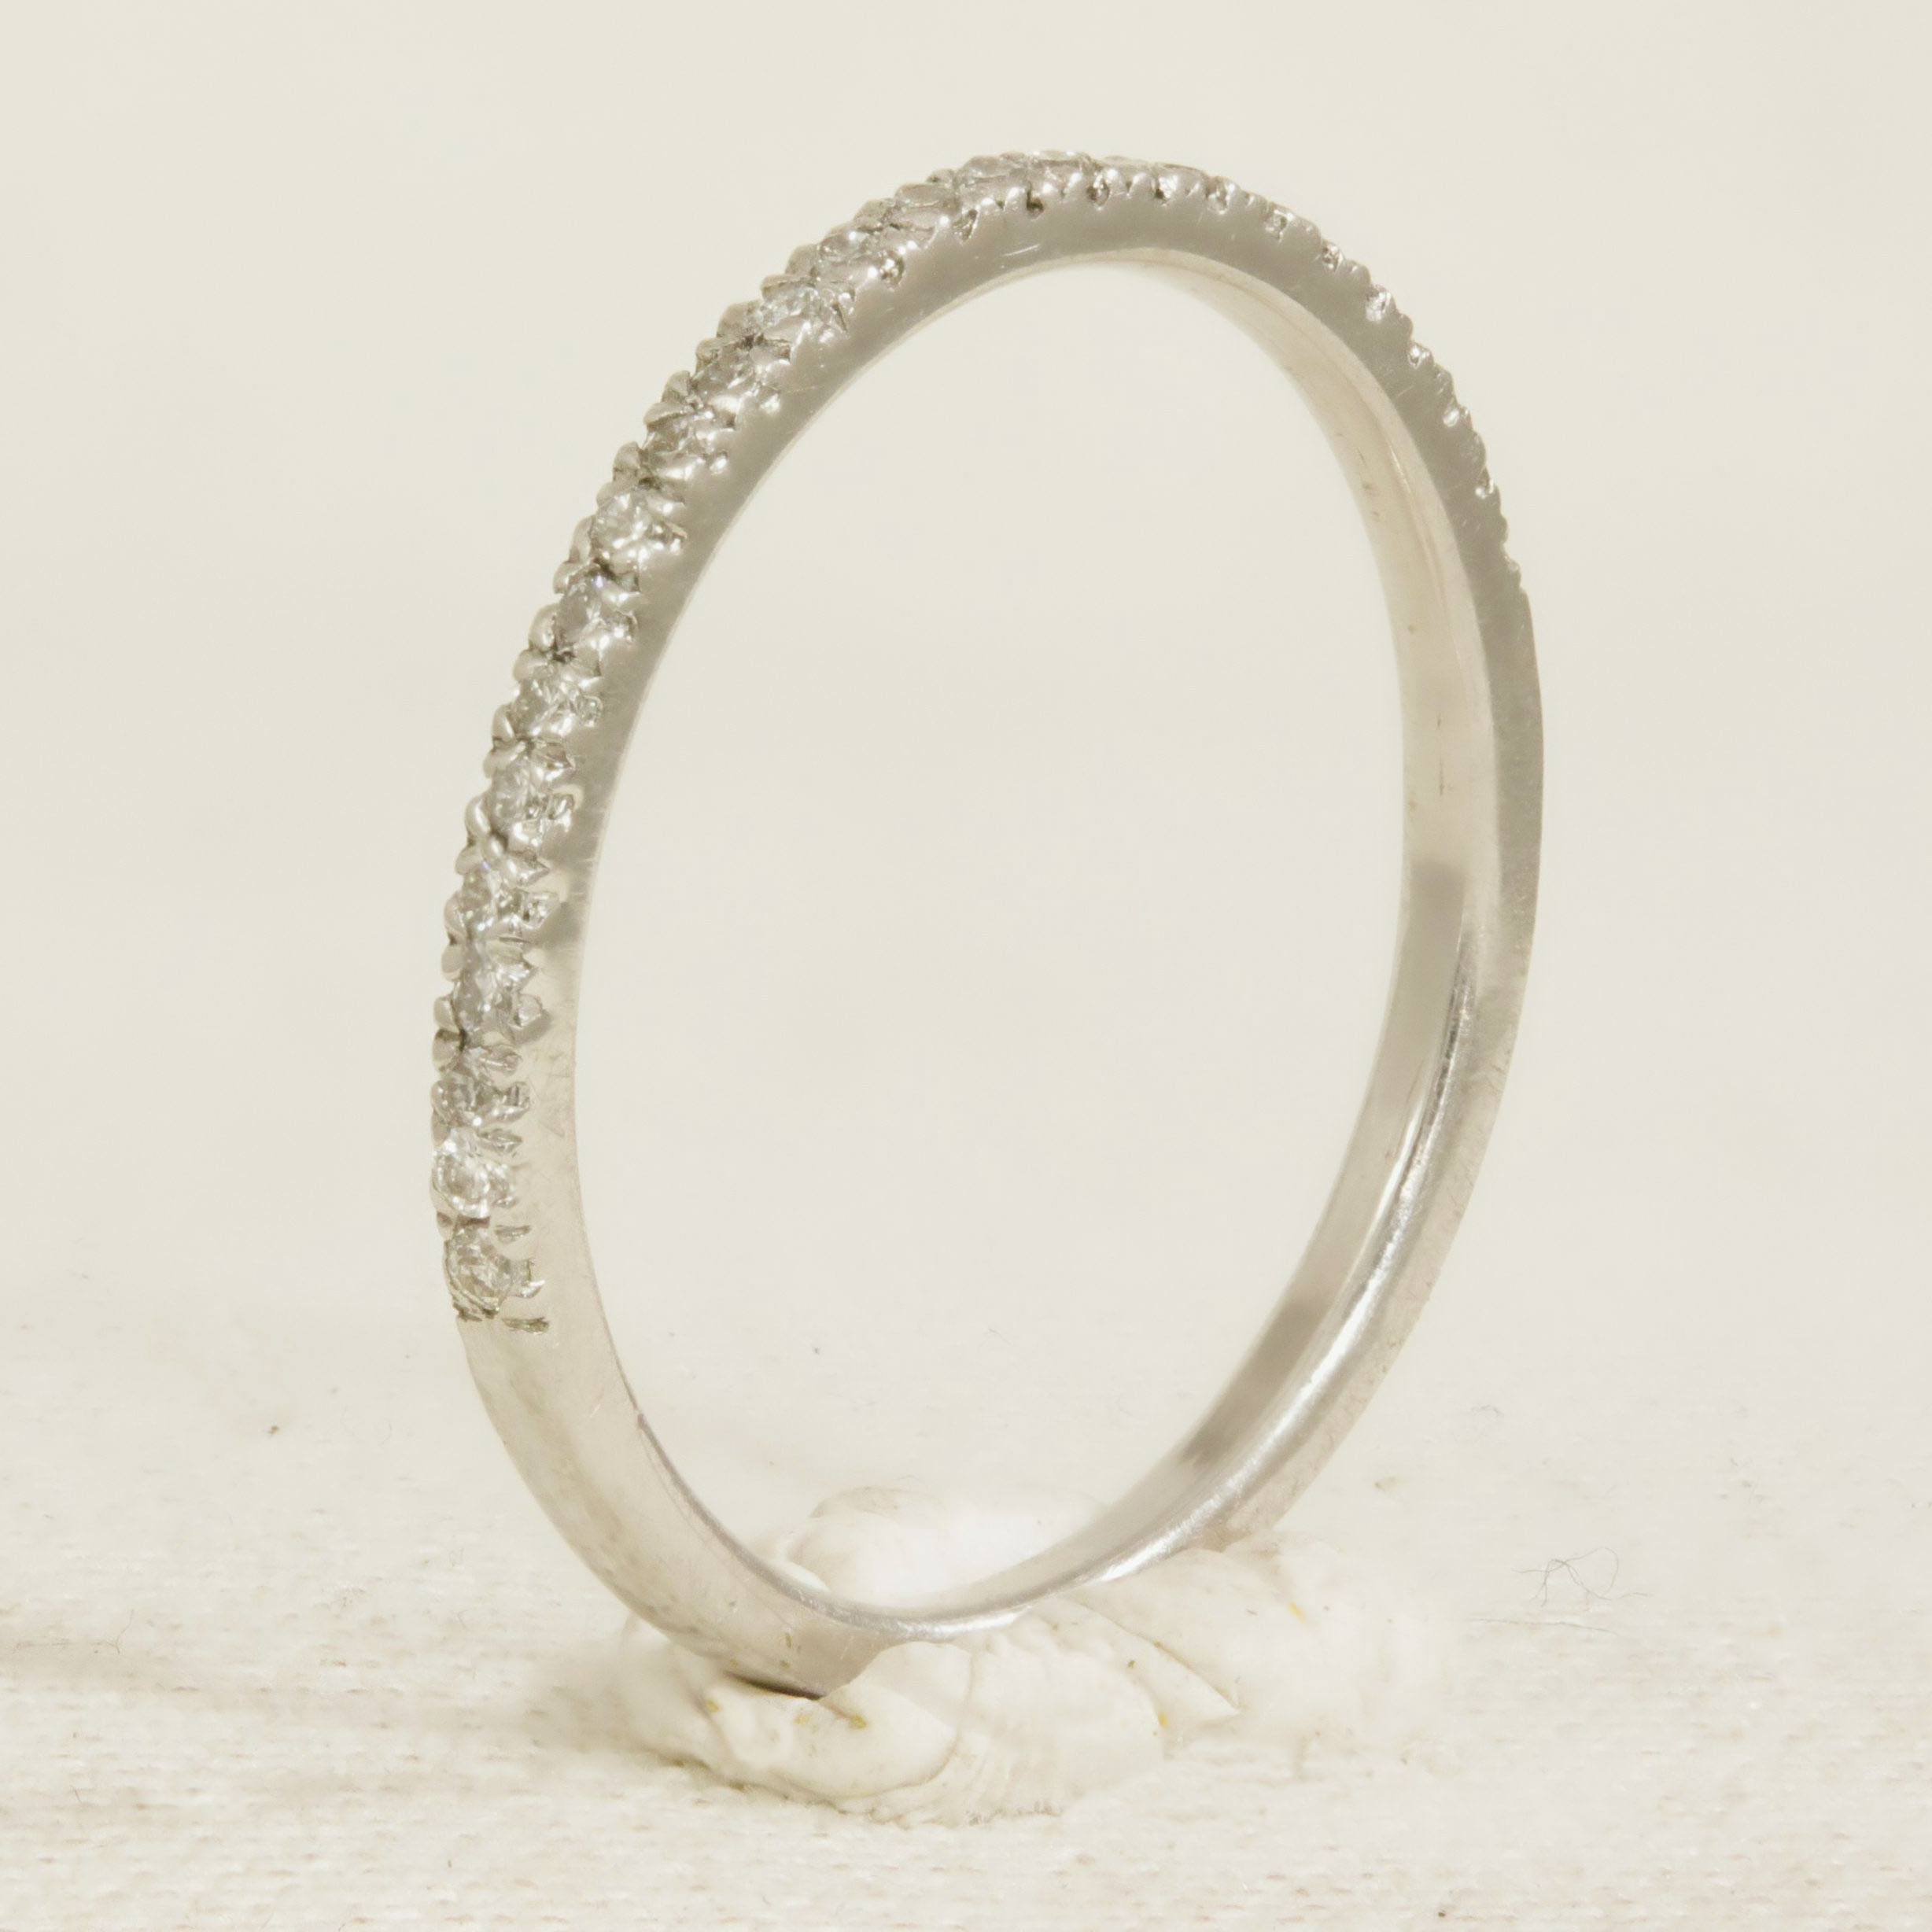 Half set 18k white gold straight ring